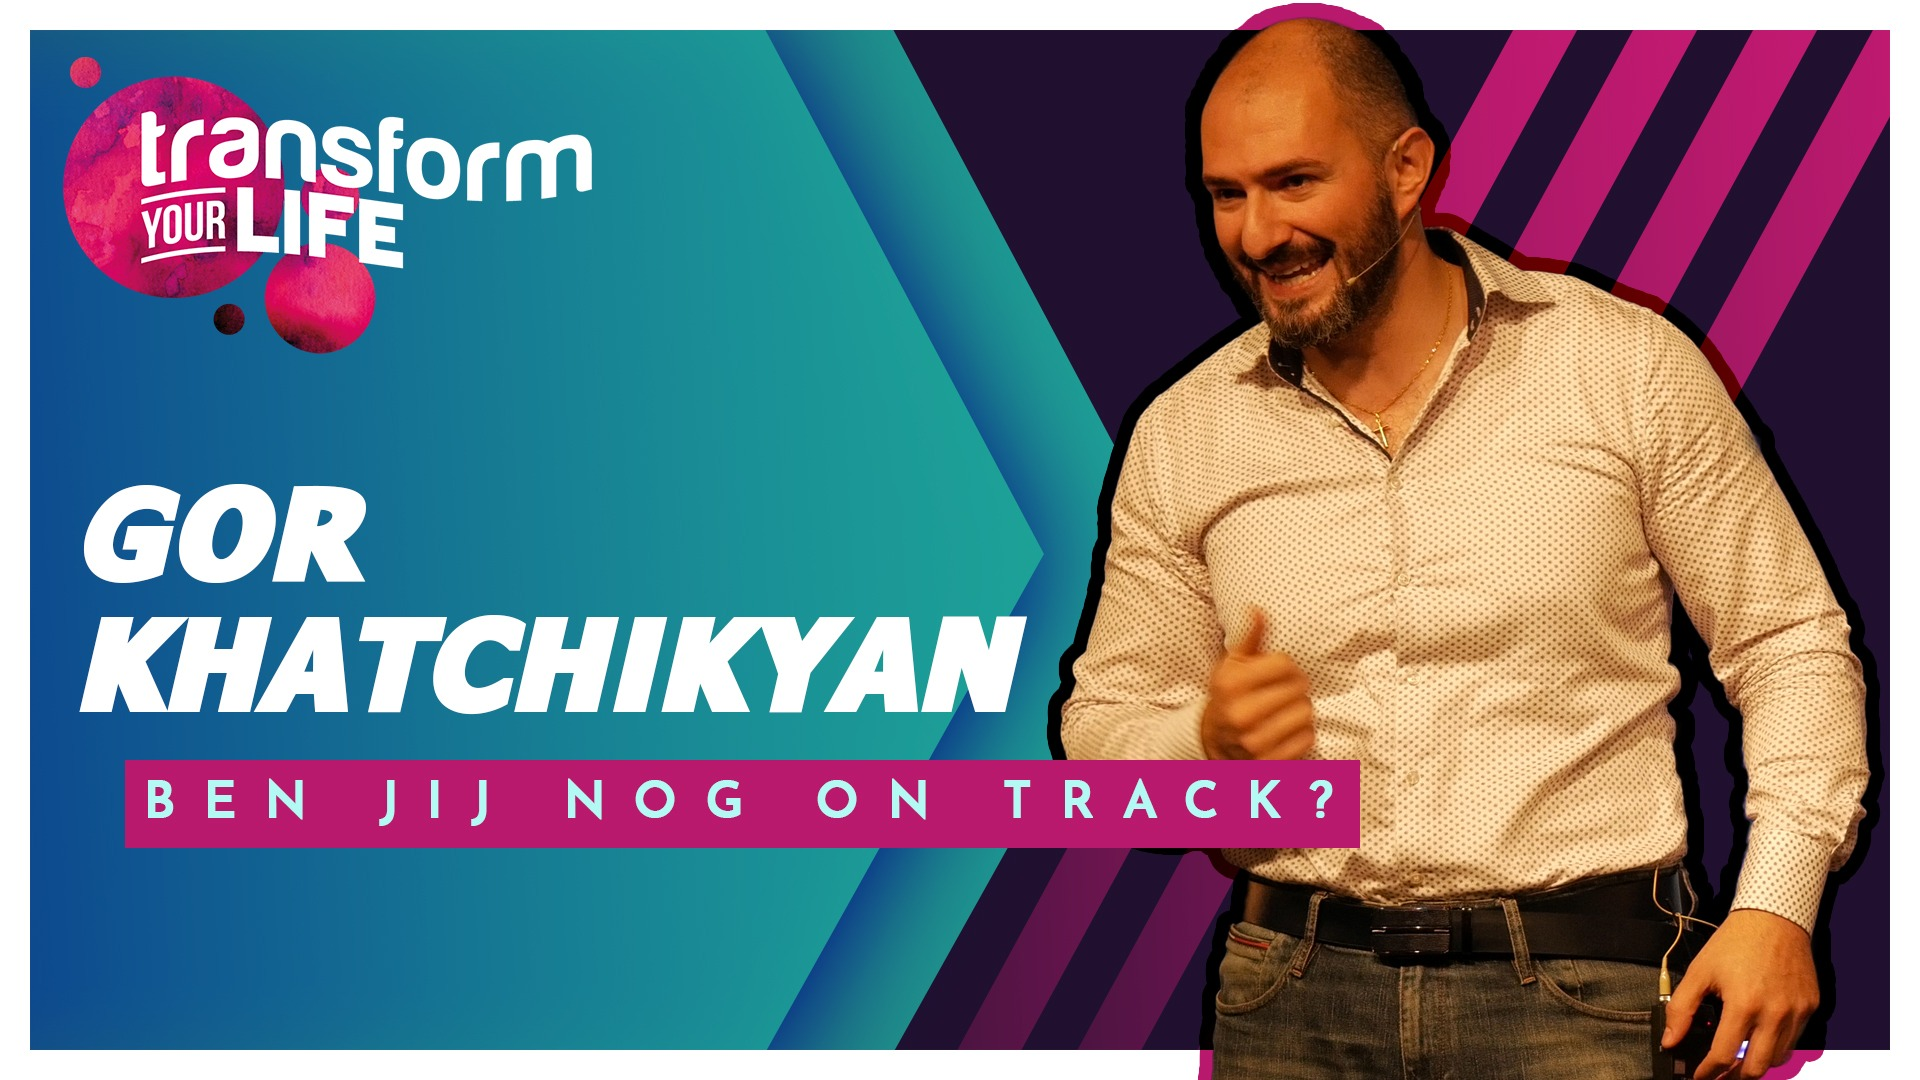 Transform Your Life met Gor Khatchikyan: 'Stay on track'